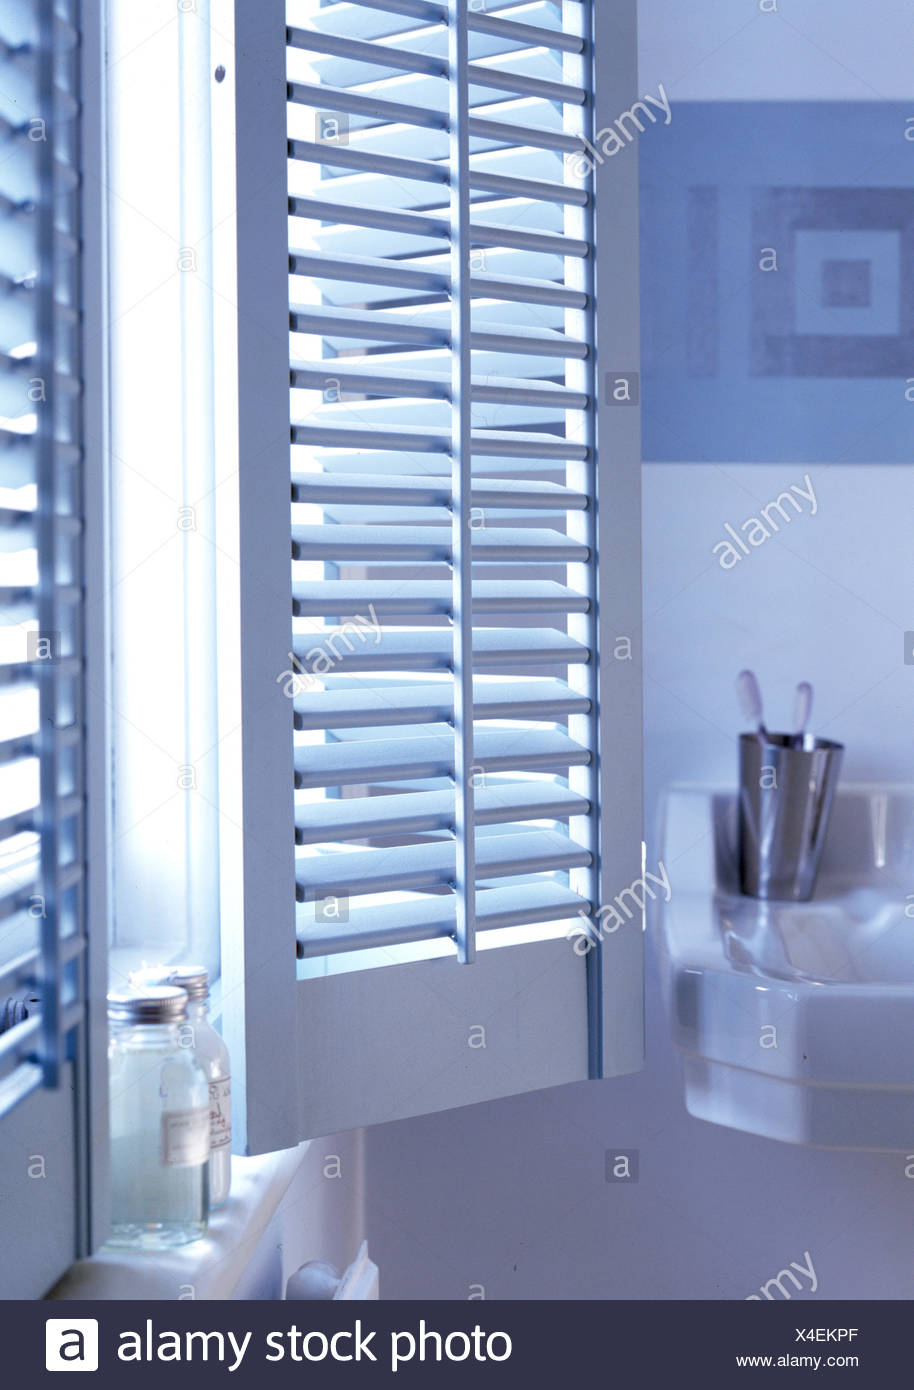 Plantation Shutters On Window In Blue And White Bathroom Stock Photo